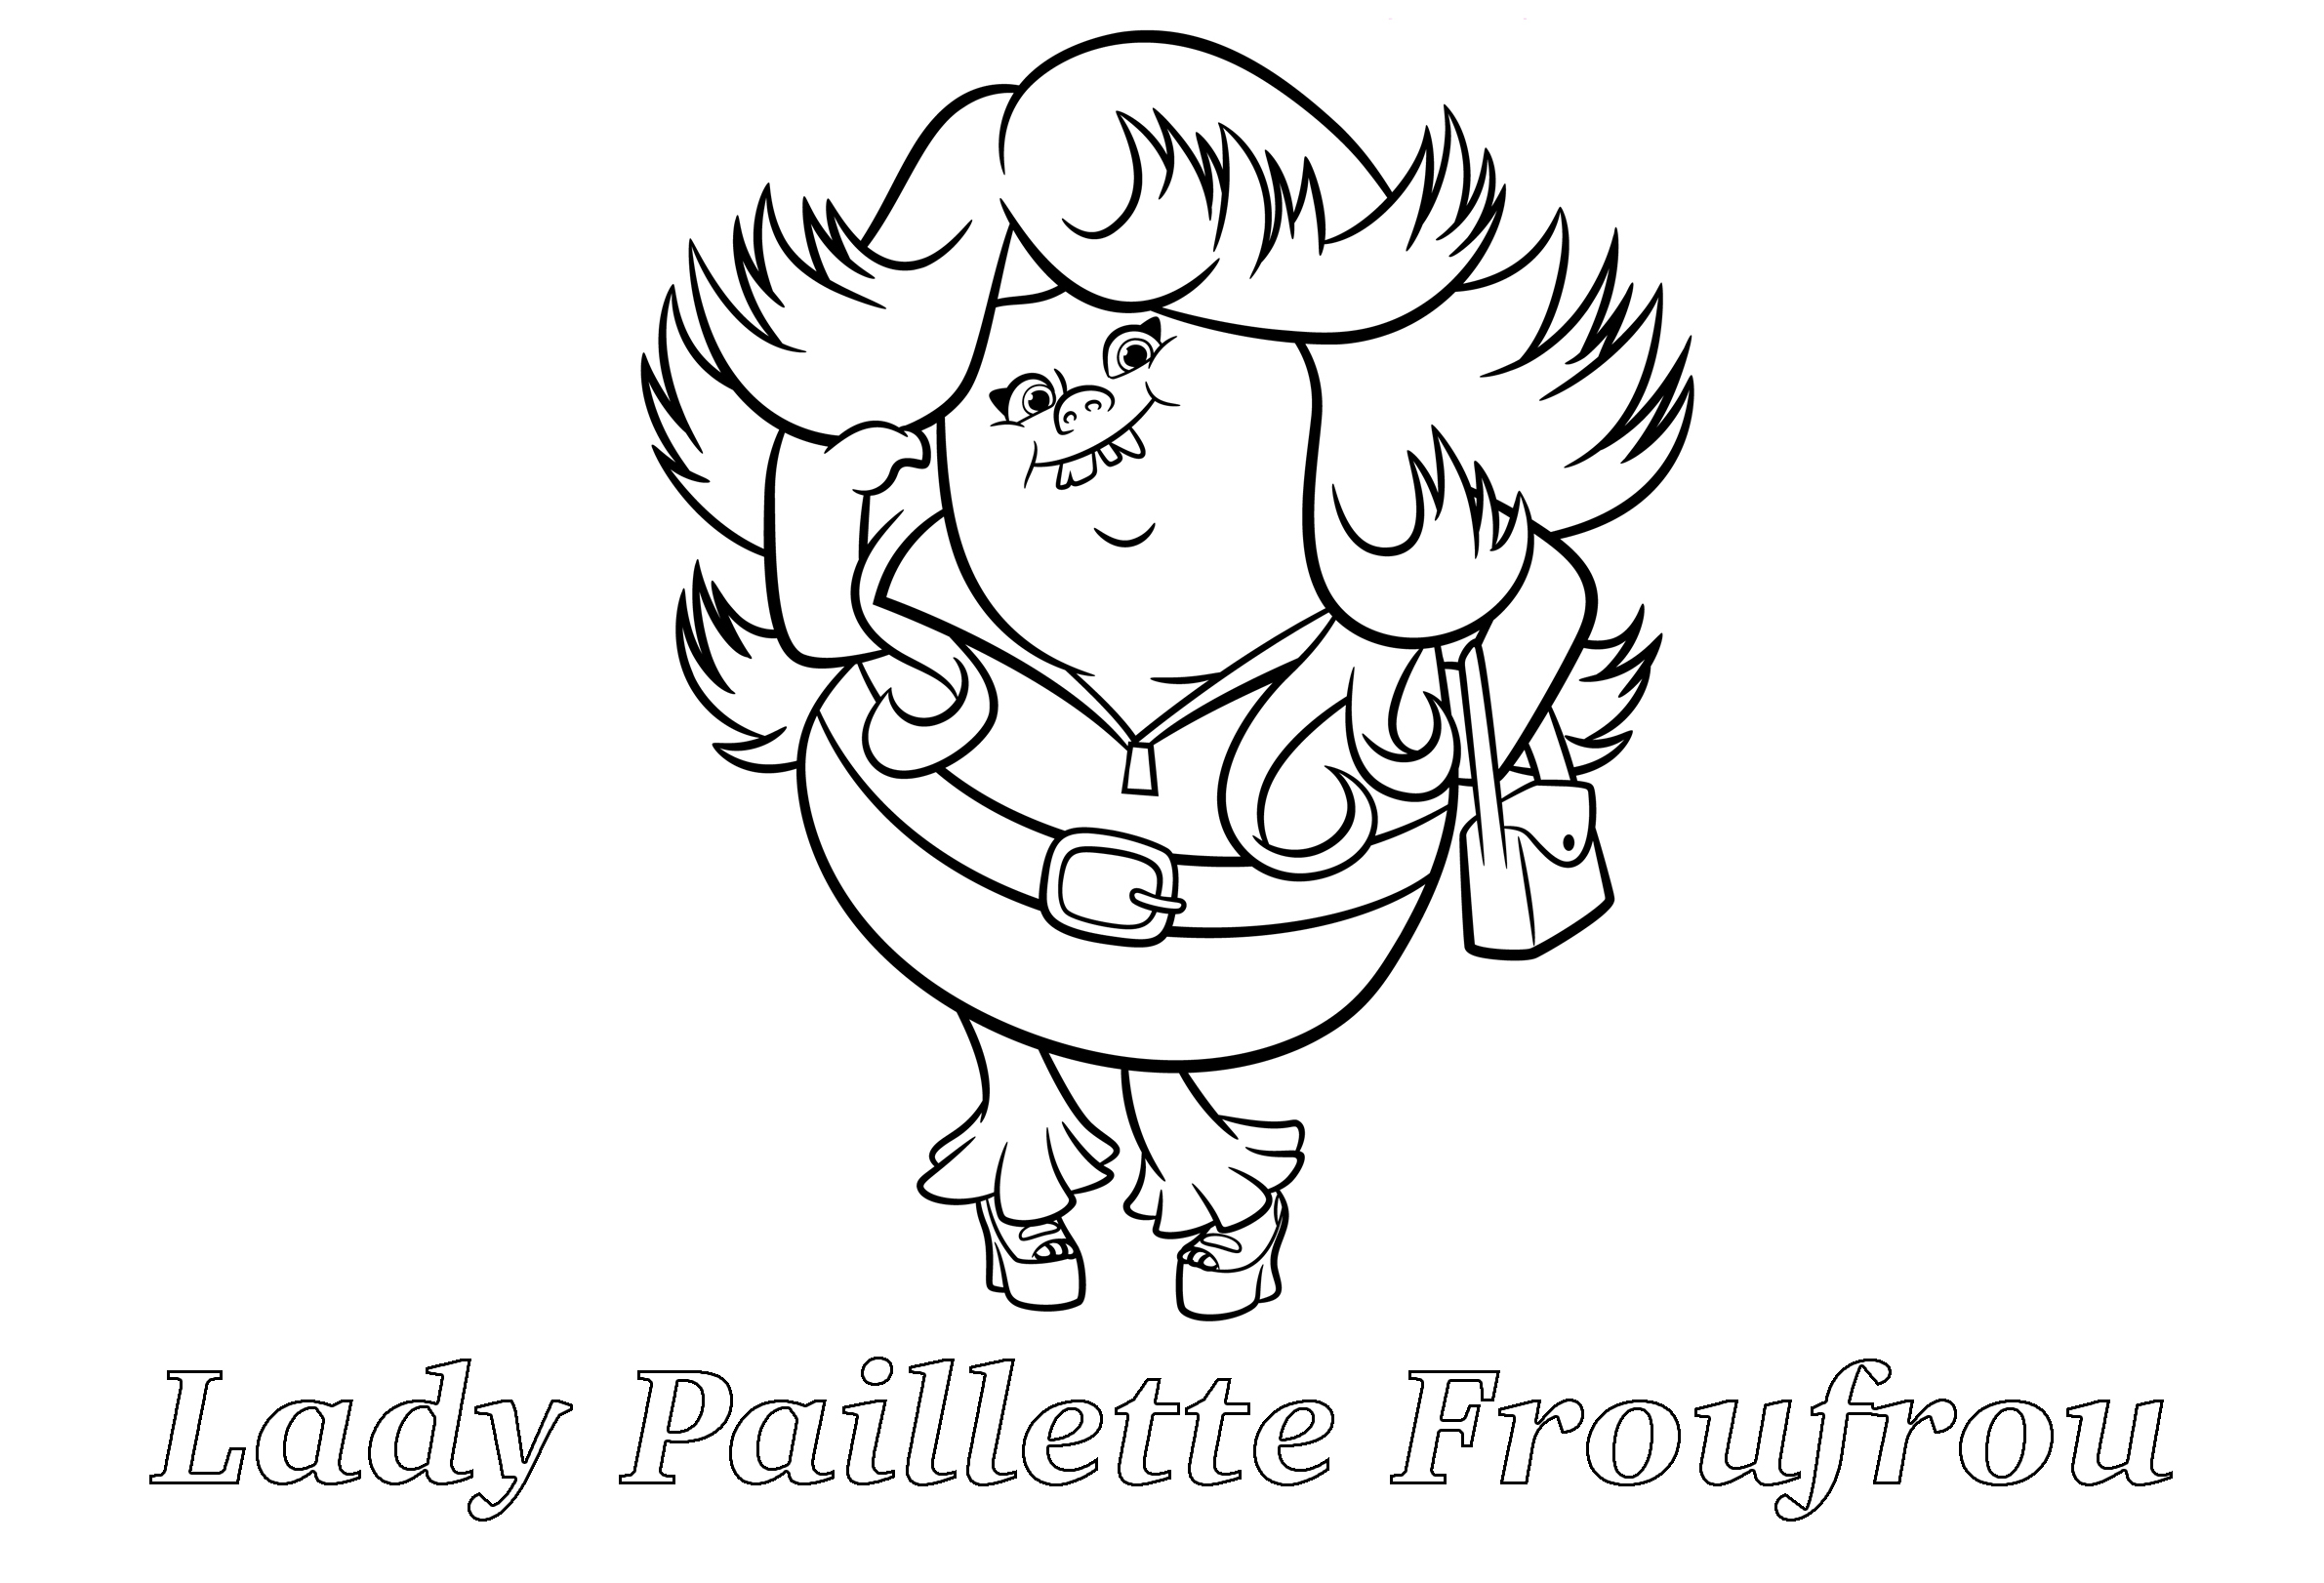 Free Trolls Coloring Page To Print And Color